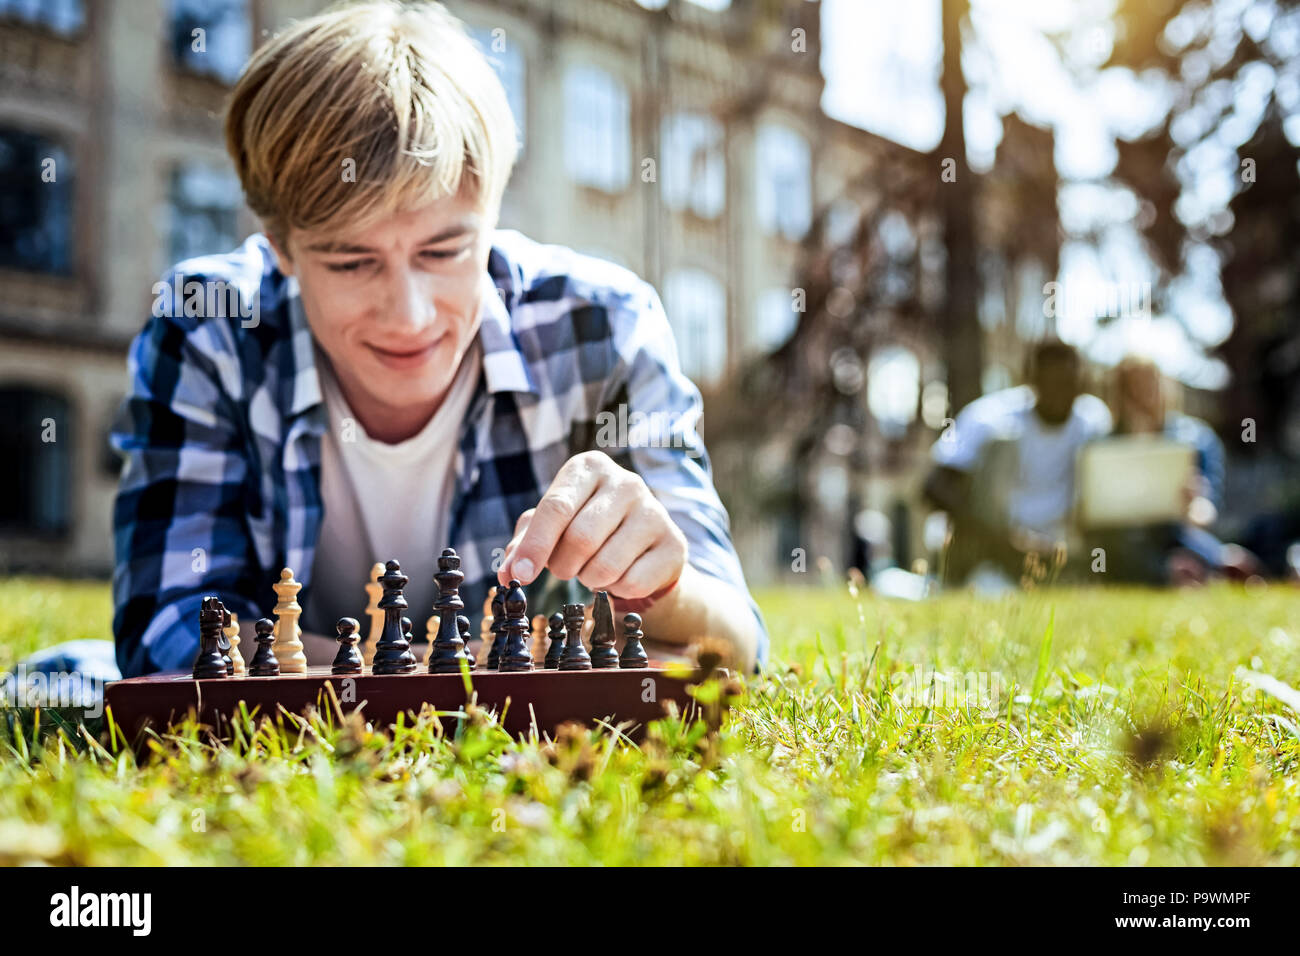 Smiling guy enjoying chess game outdoors - Stock Image